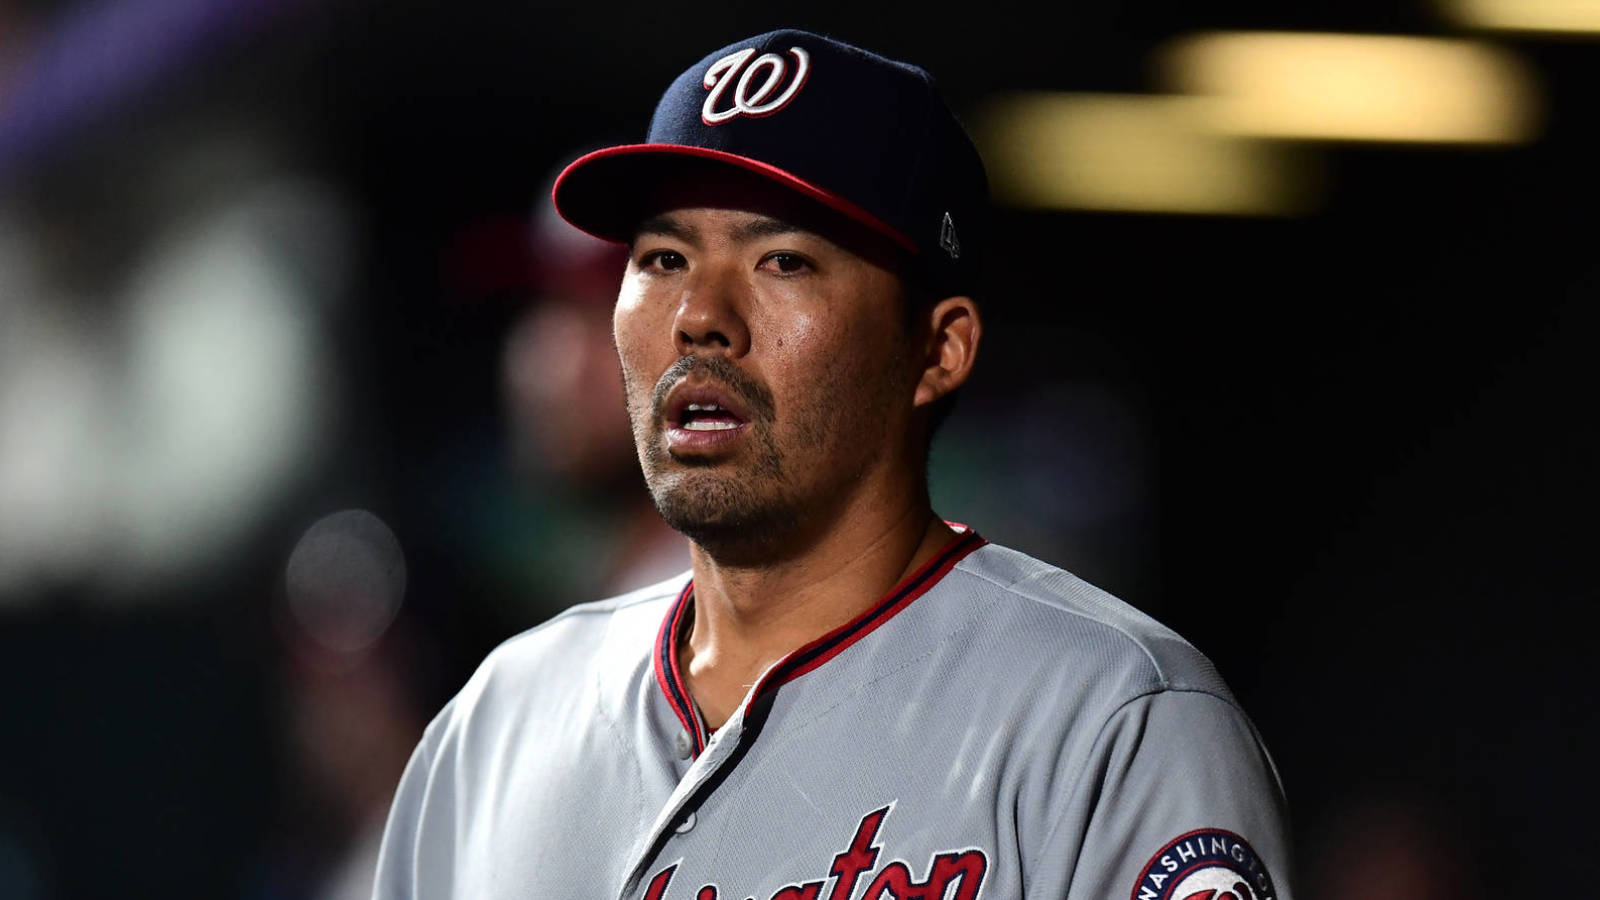 b916fb64a Nationals' Kurt Suzuki injured, forced to exit game after taking ...